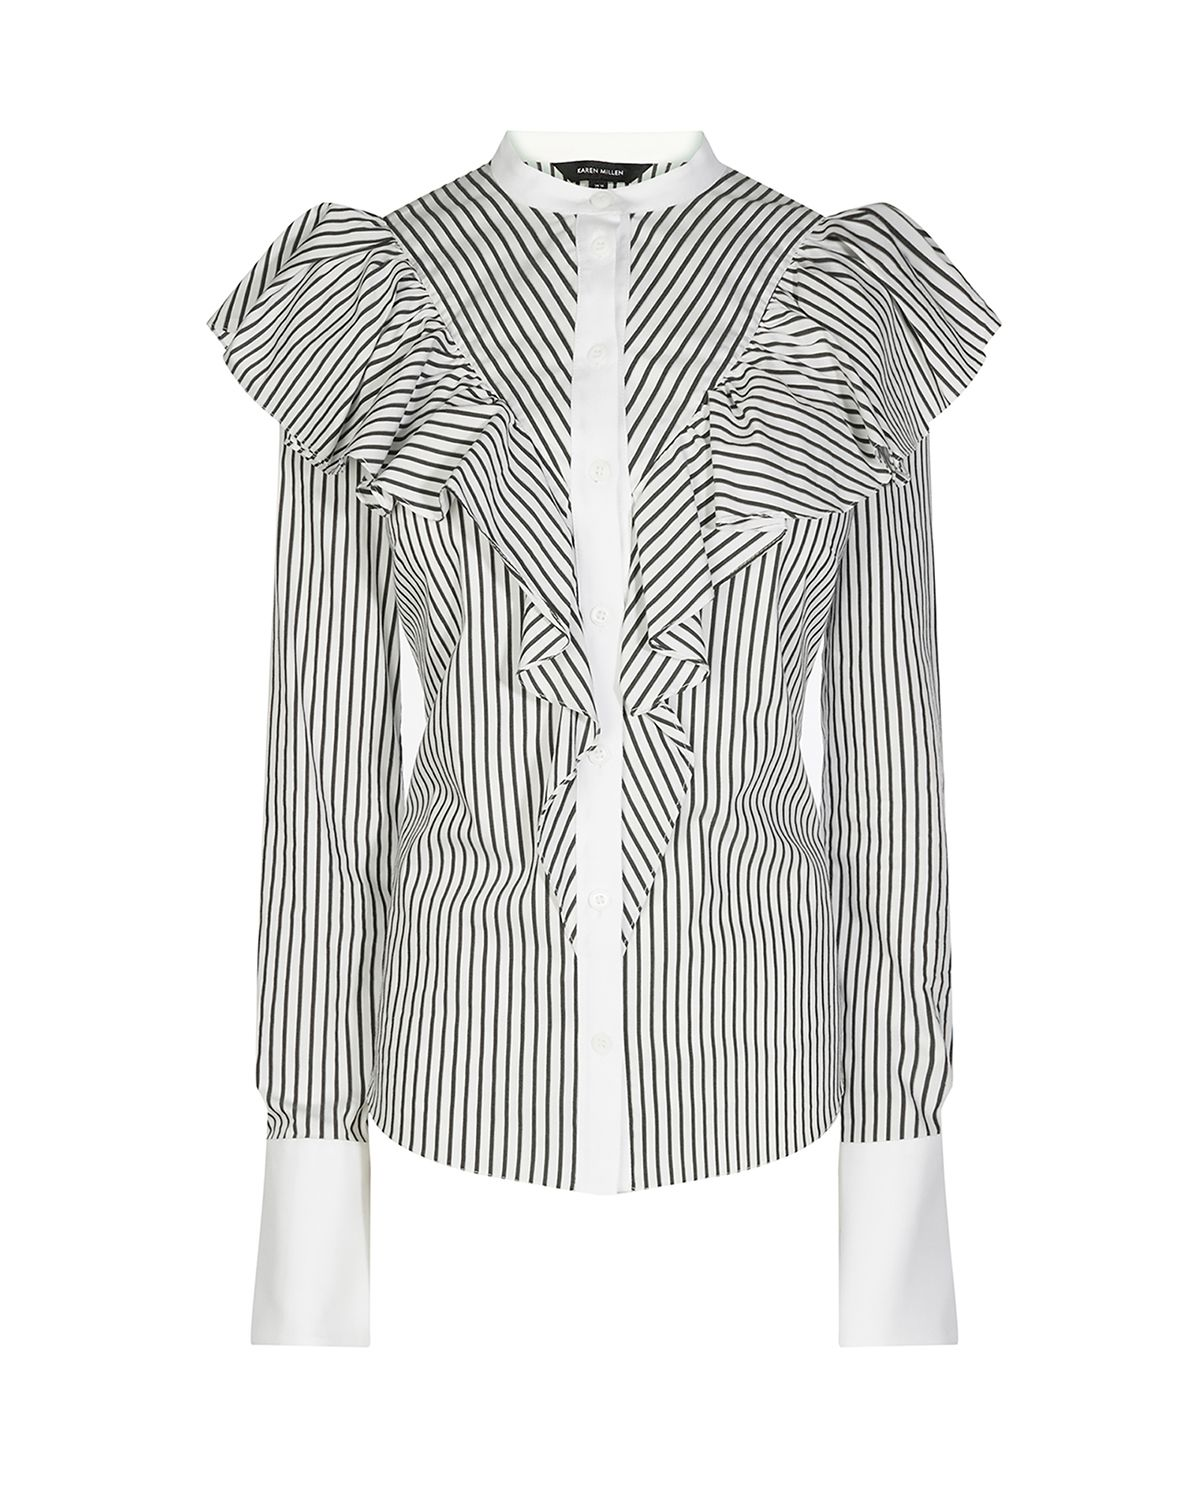 Karen Millen Frill Striped Shirt, Black/White